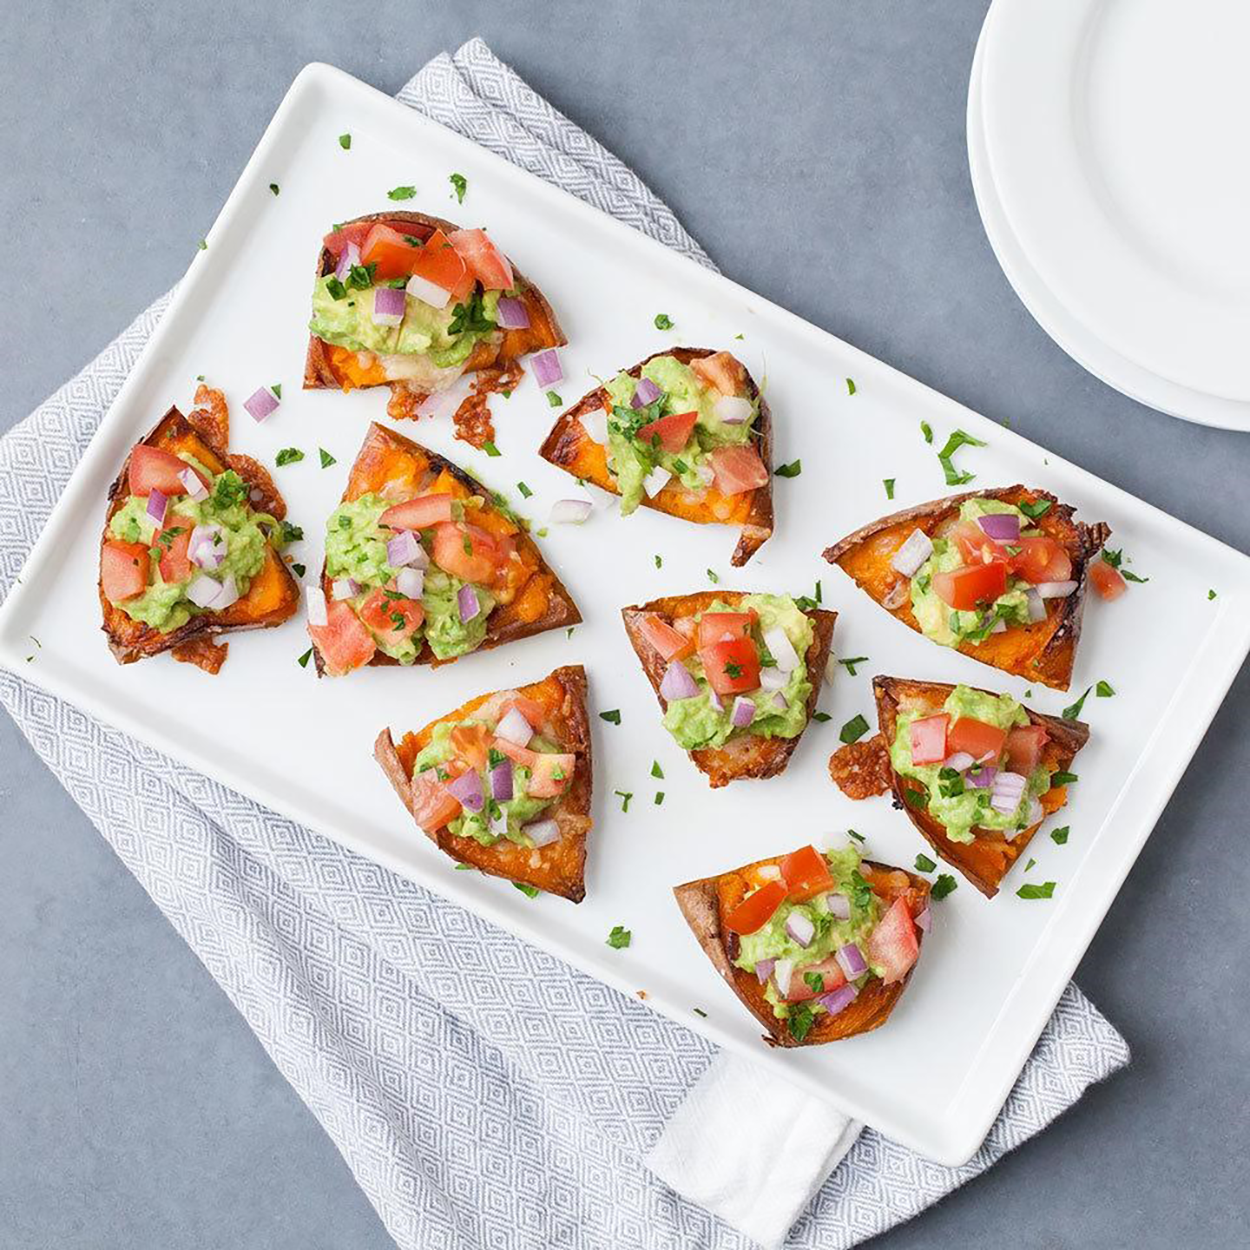 Top crispy sweet potato skins with guacamole for a healthy take on classic potato skins in this easy crowd-pleasing recipe.